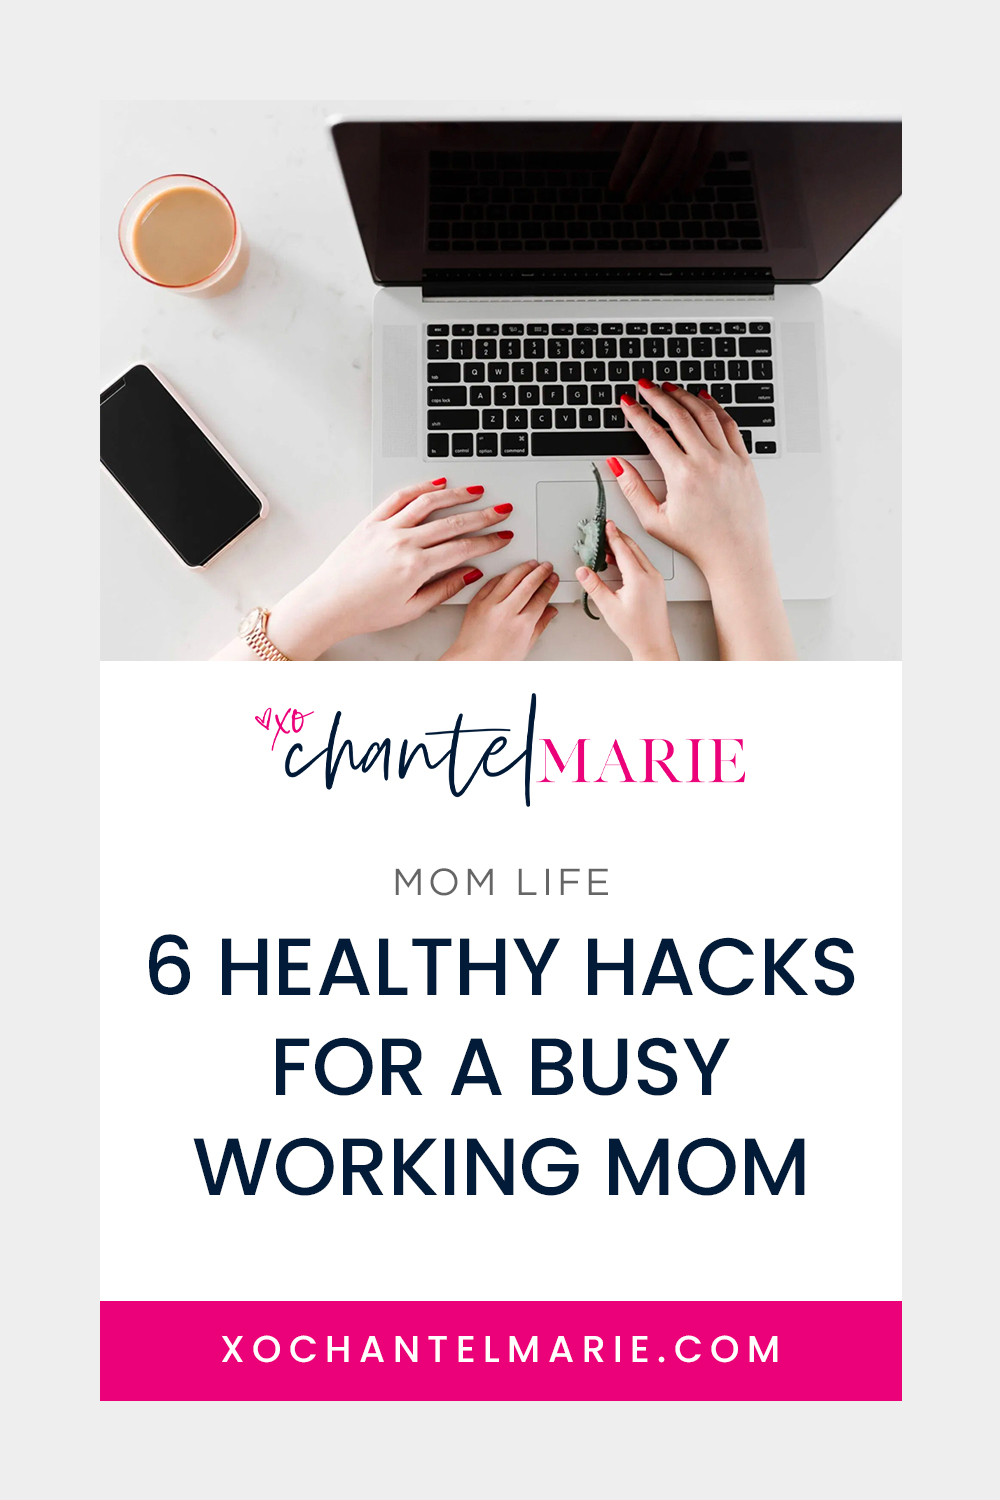 6 Healthy Hacks for a Busy Working Mom